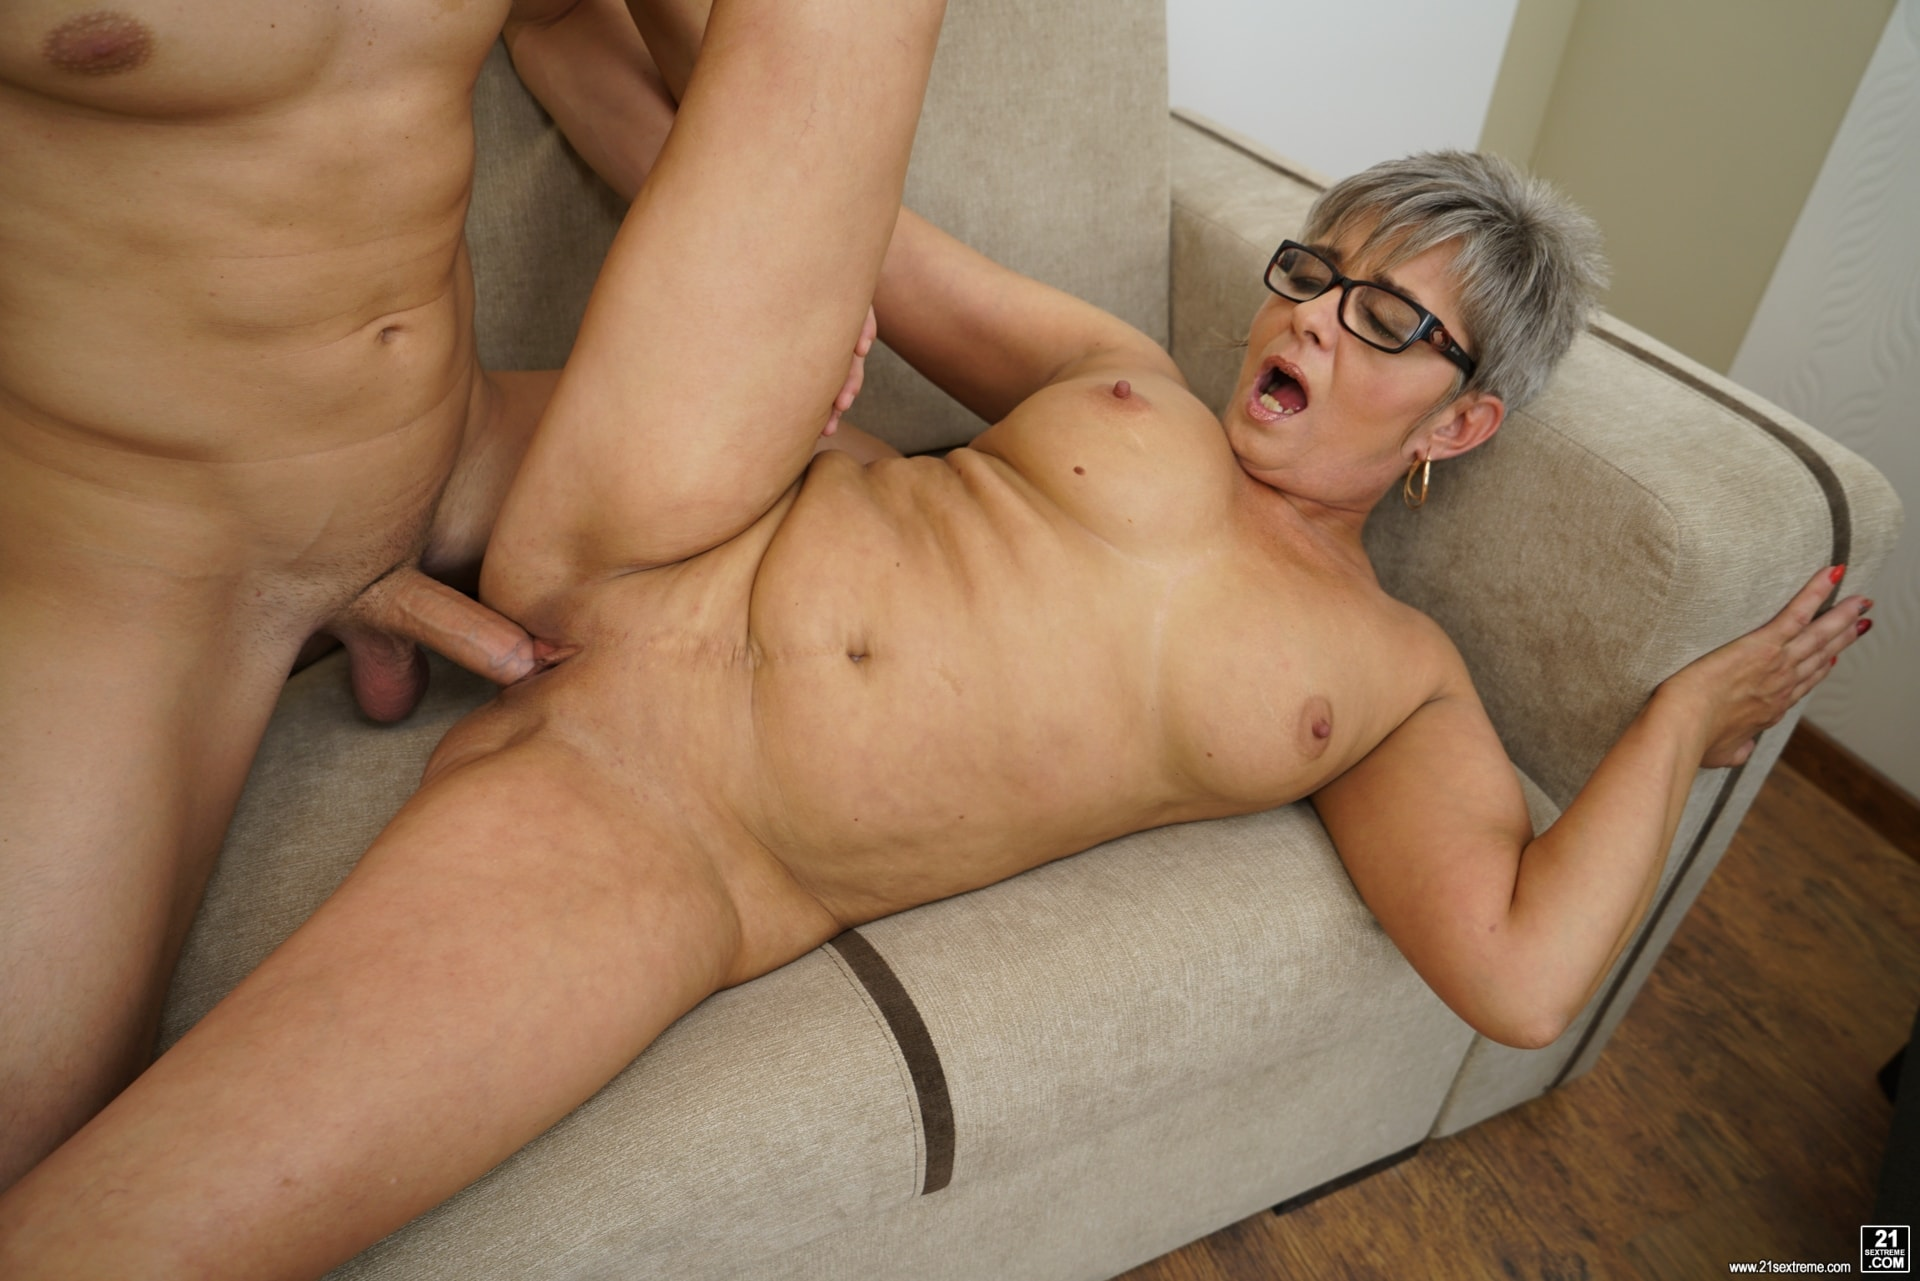 21Sextury 'The Charms Of A Granny's Pussy' starring Jessye (Photo 195)